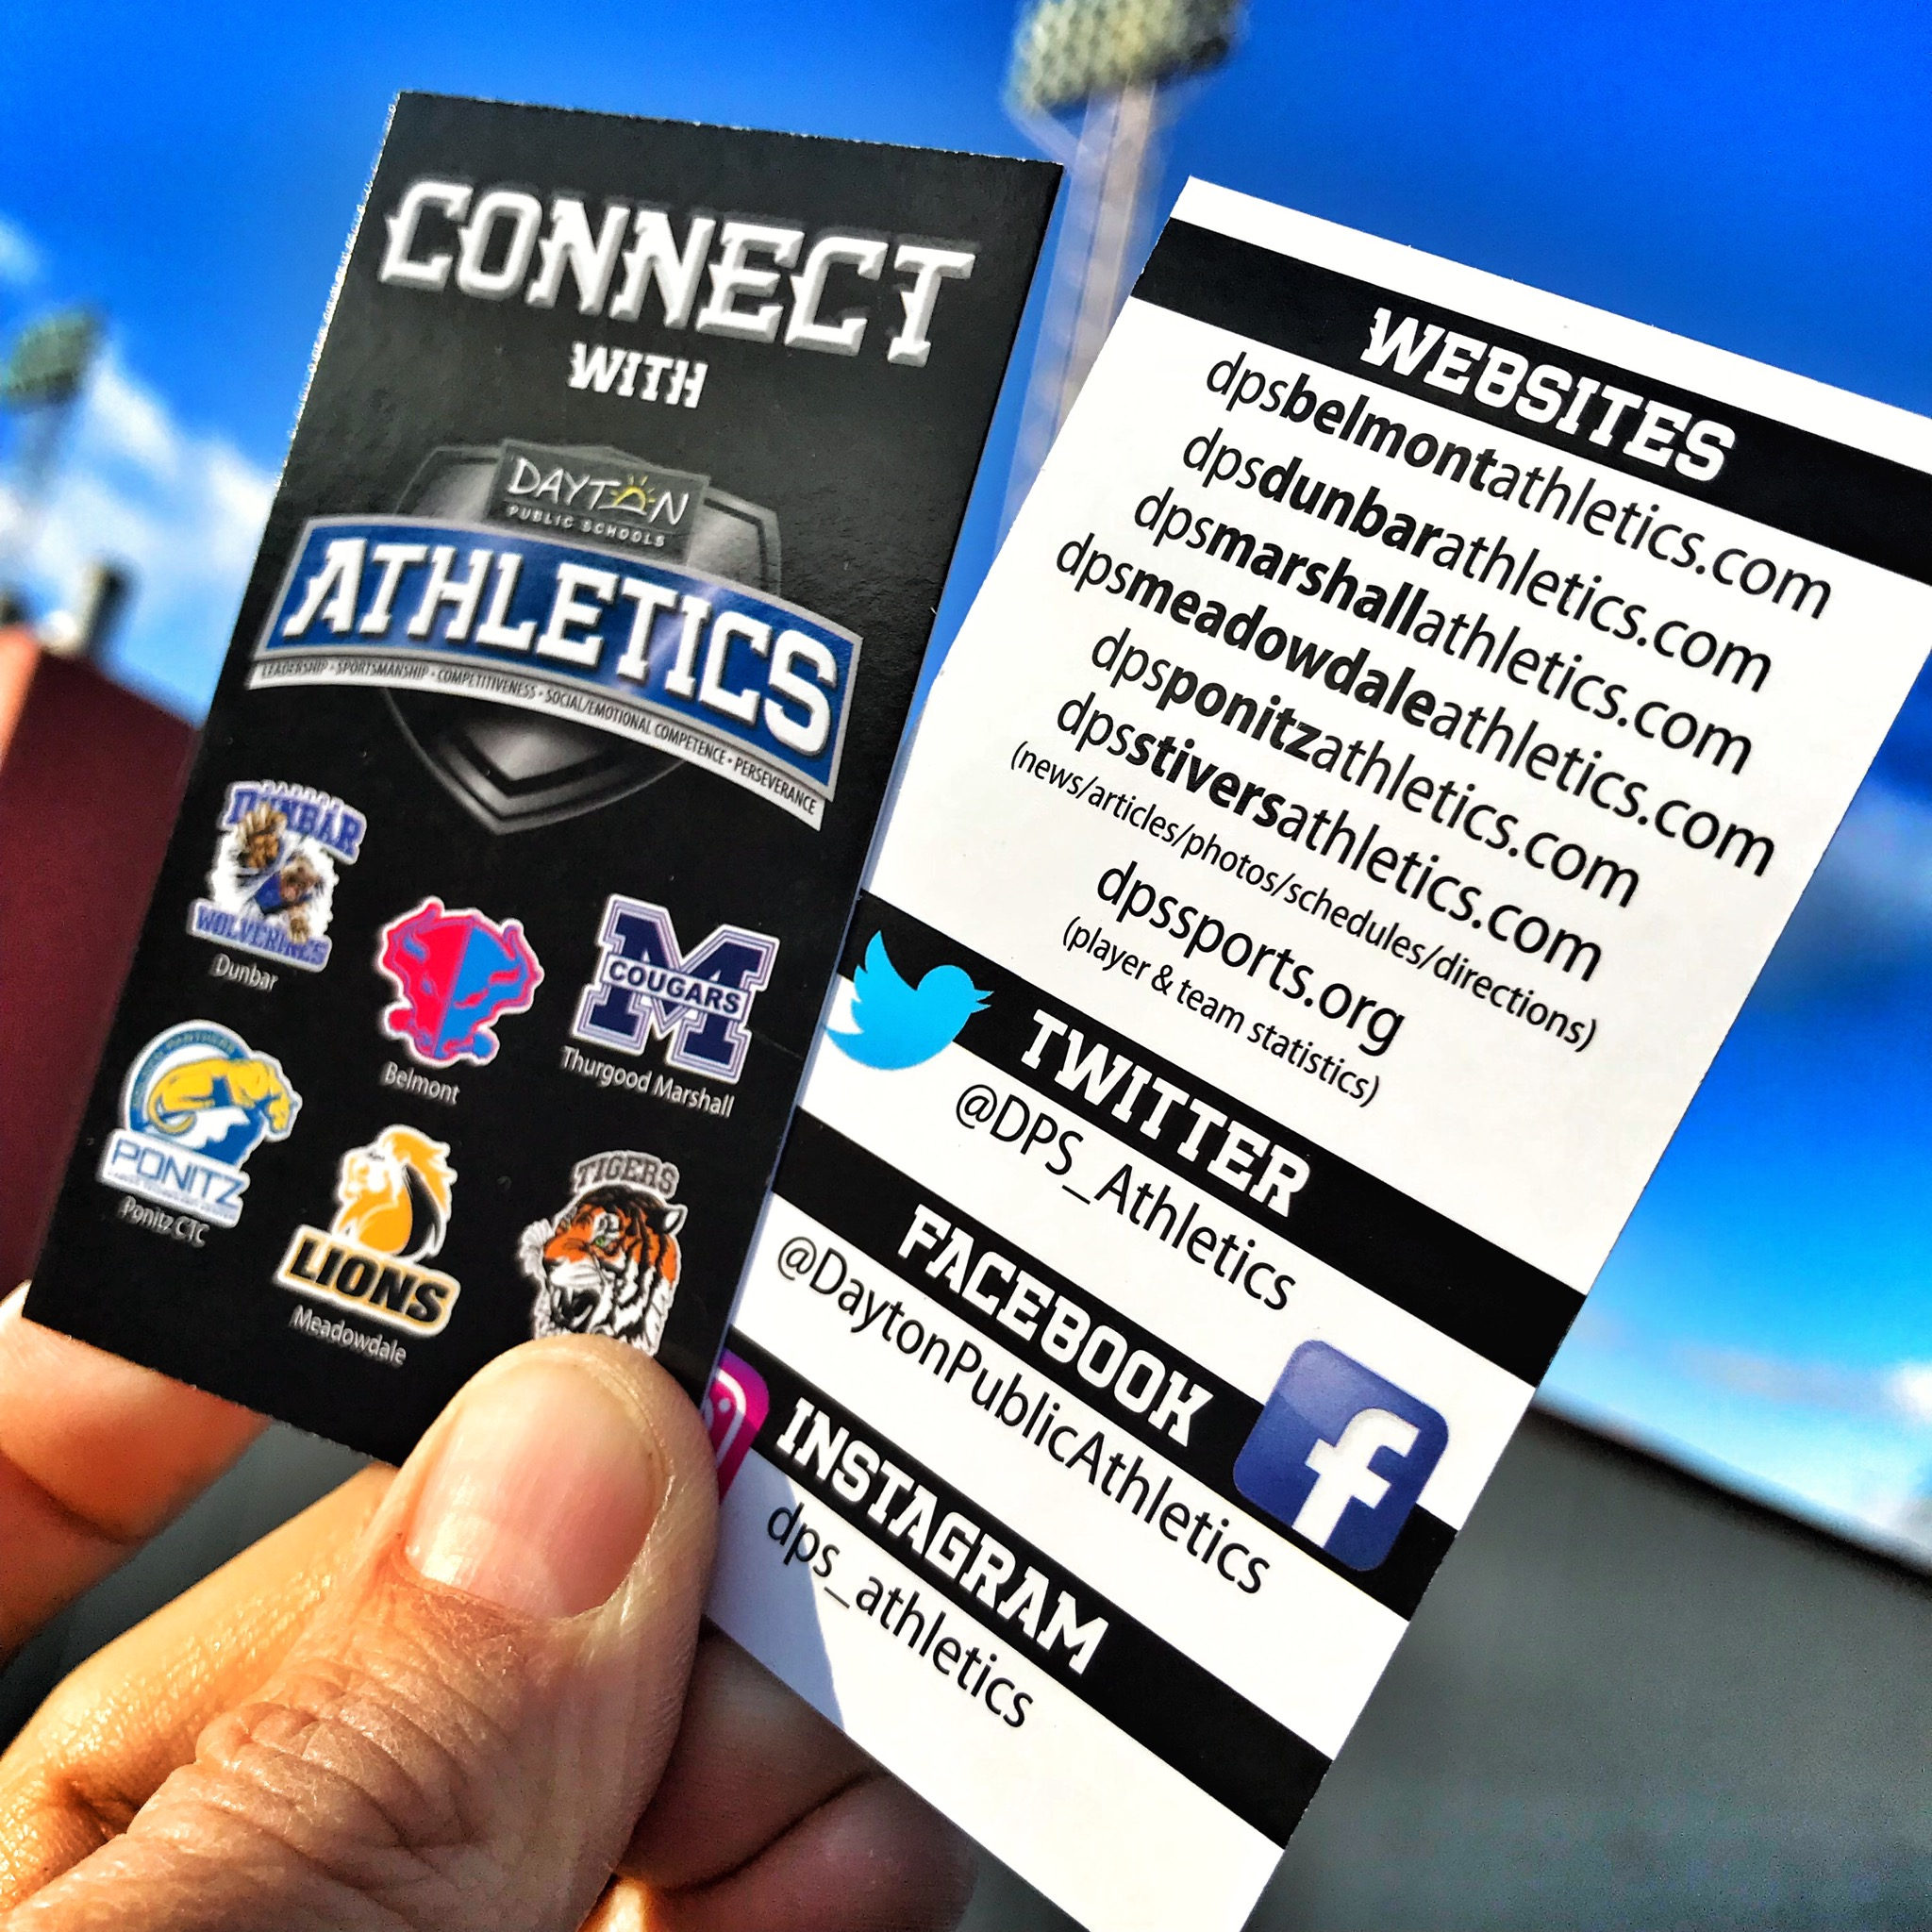 Get Connected to Ponitz Athletics!